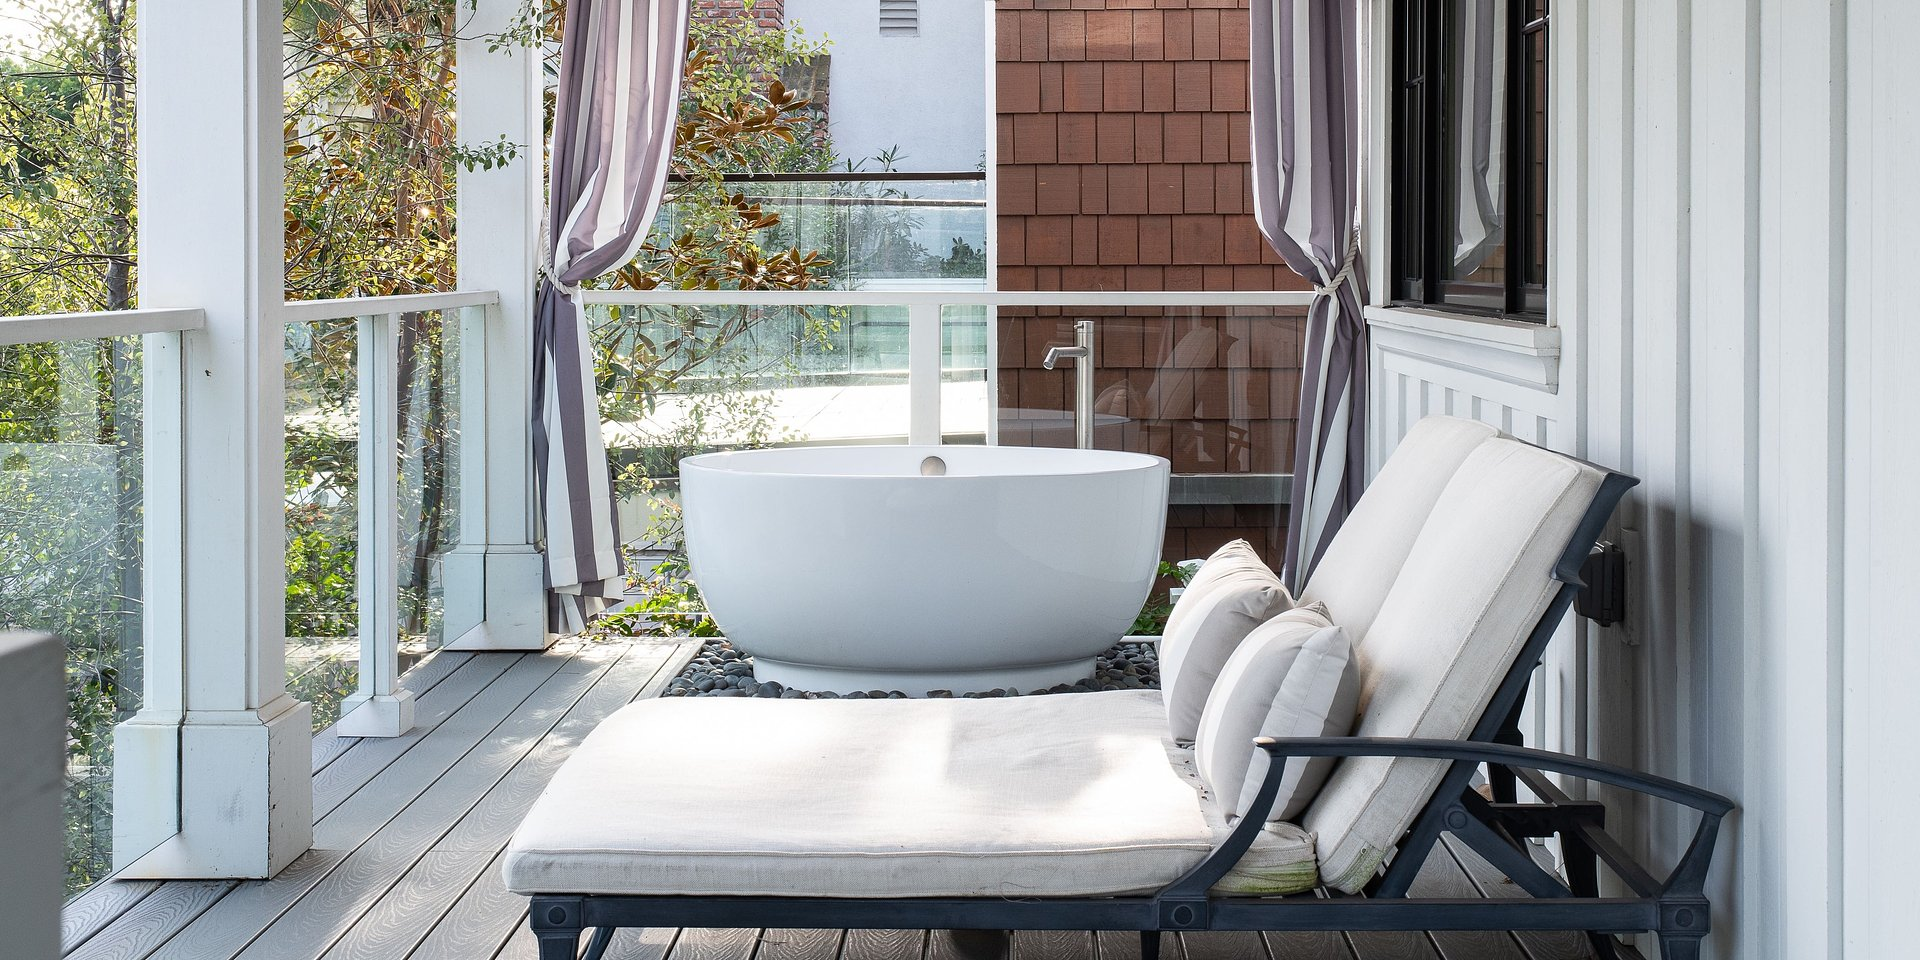 Coldwell Banker Realty Lists a Corona del Mar Property with an Outdoor Japanese Soaking Tub for $3.495 Million